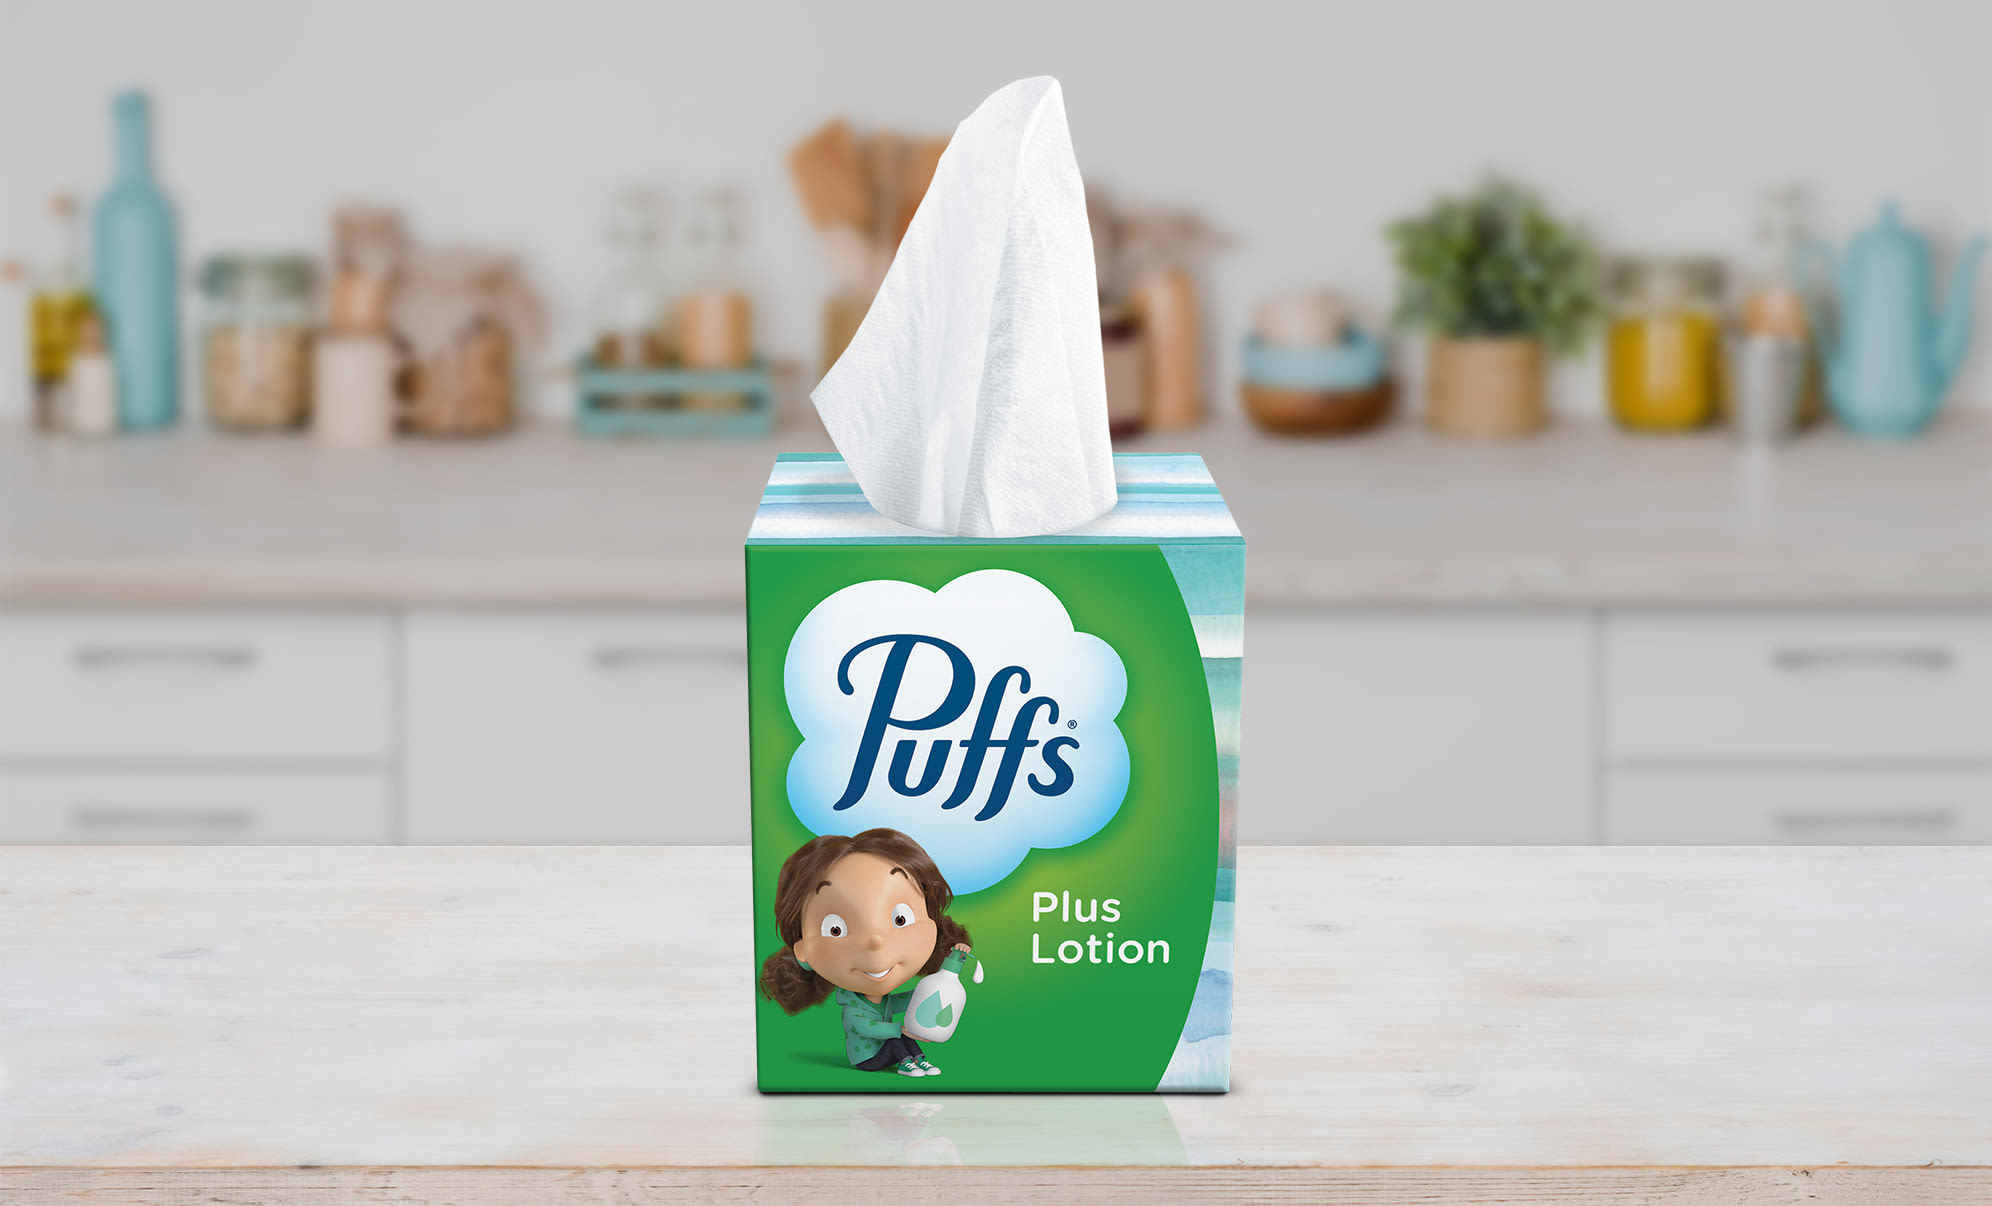 Girl sitting at the table with Puffs Plus Lotion